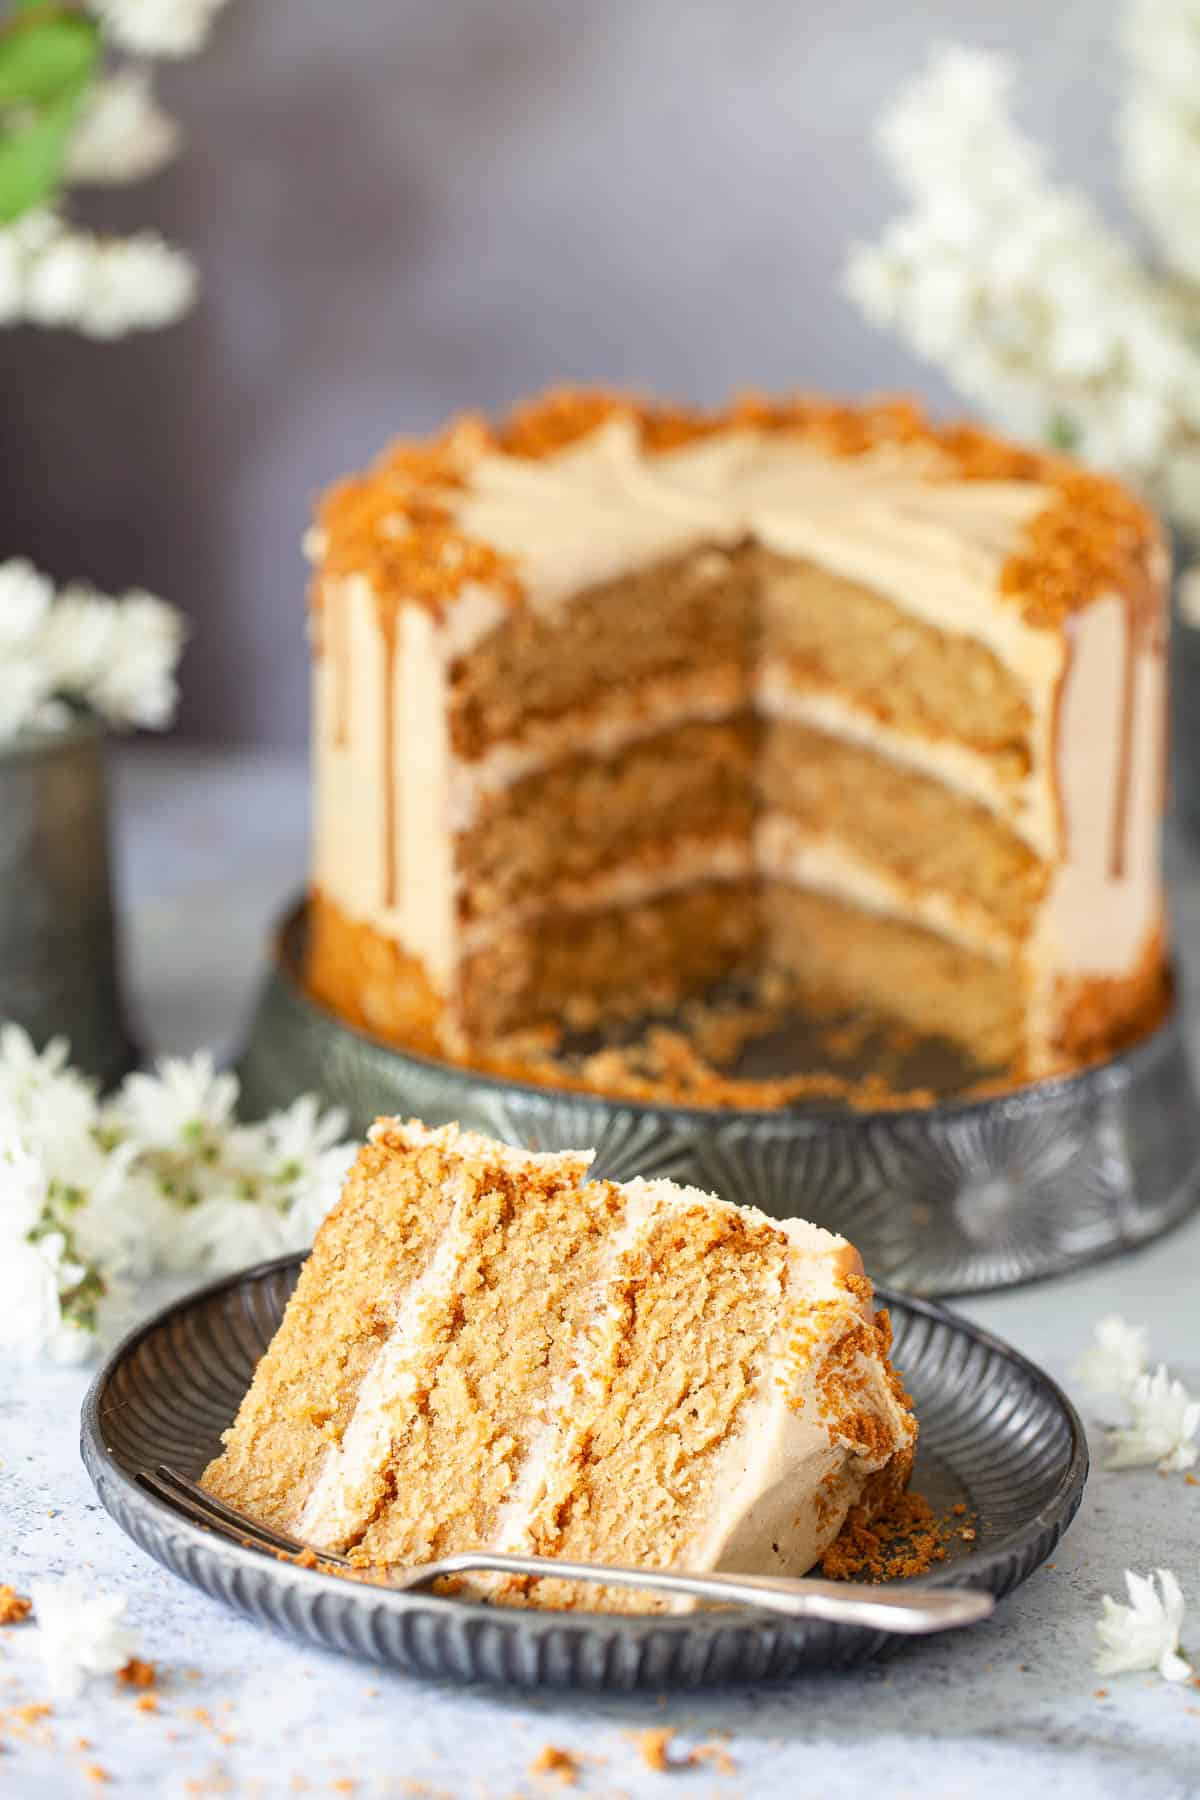 A slice of vegan Biscoff cake with Biscoff buttercream in front of the entire cake